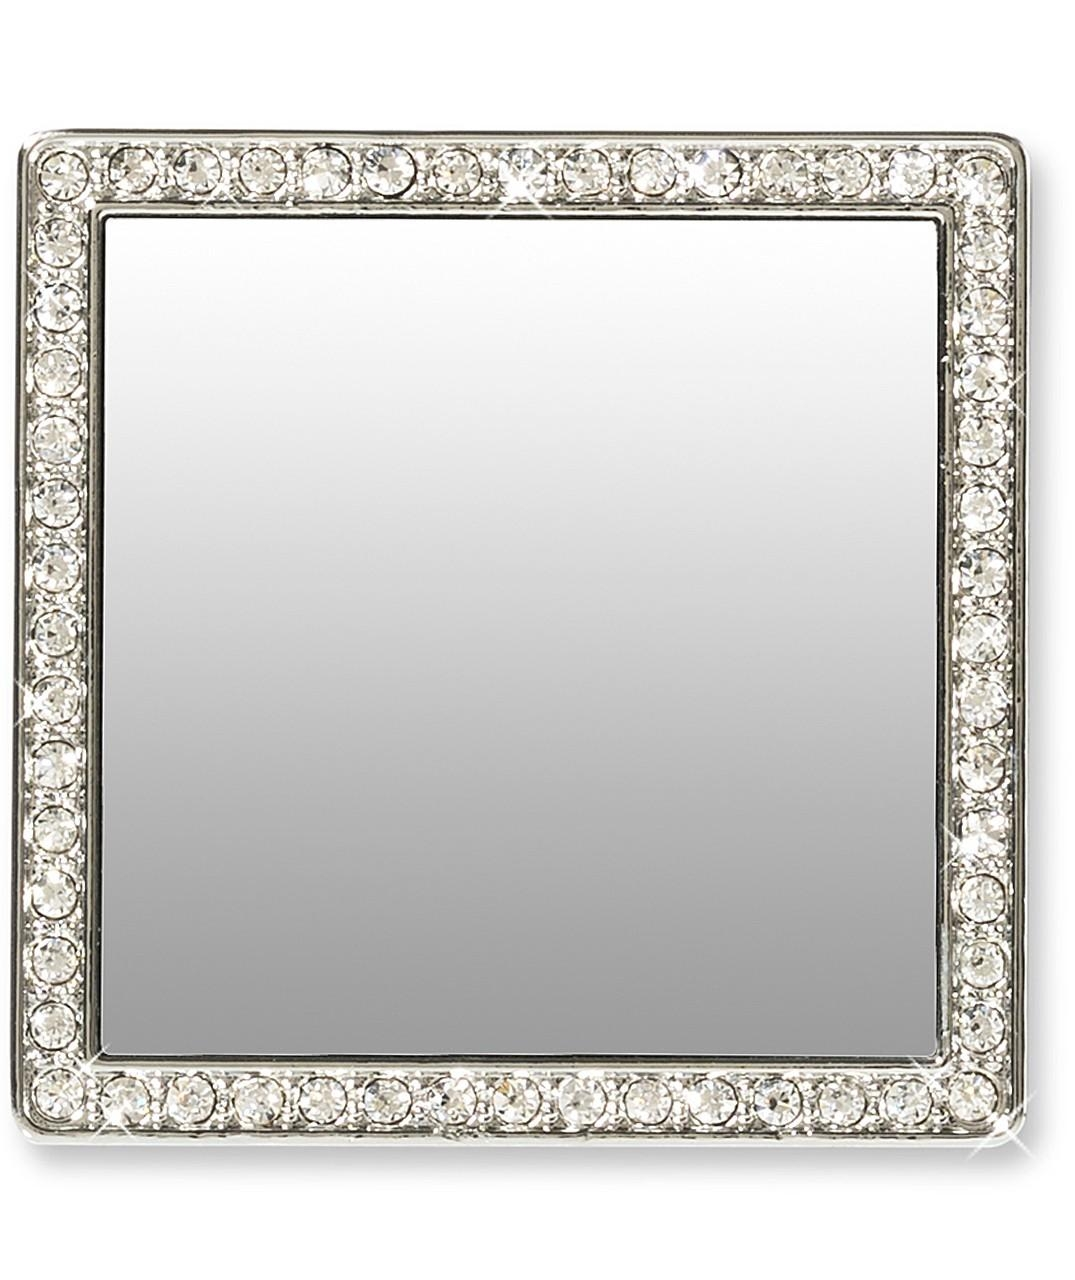 Silver Square With Crystals Phone Mirror Pertaining To Mirror With Crystals (Image 18 of 20)